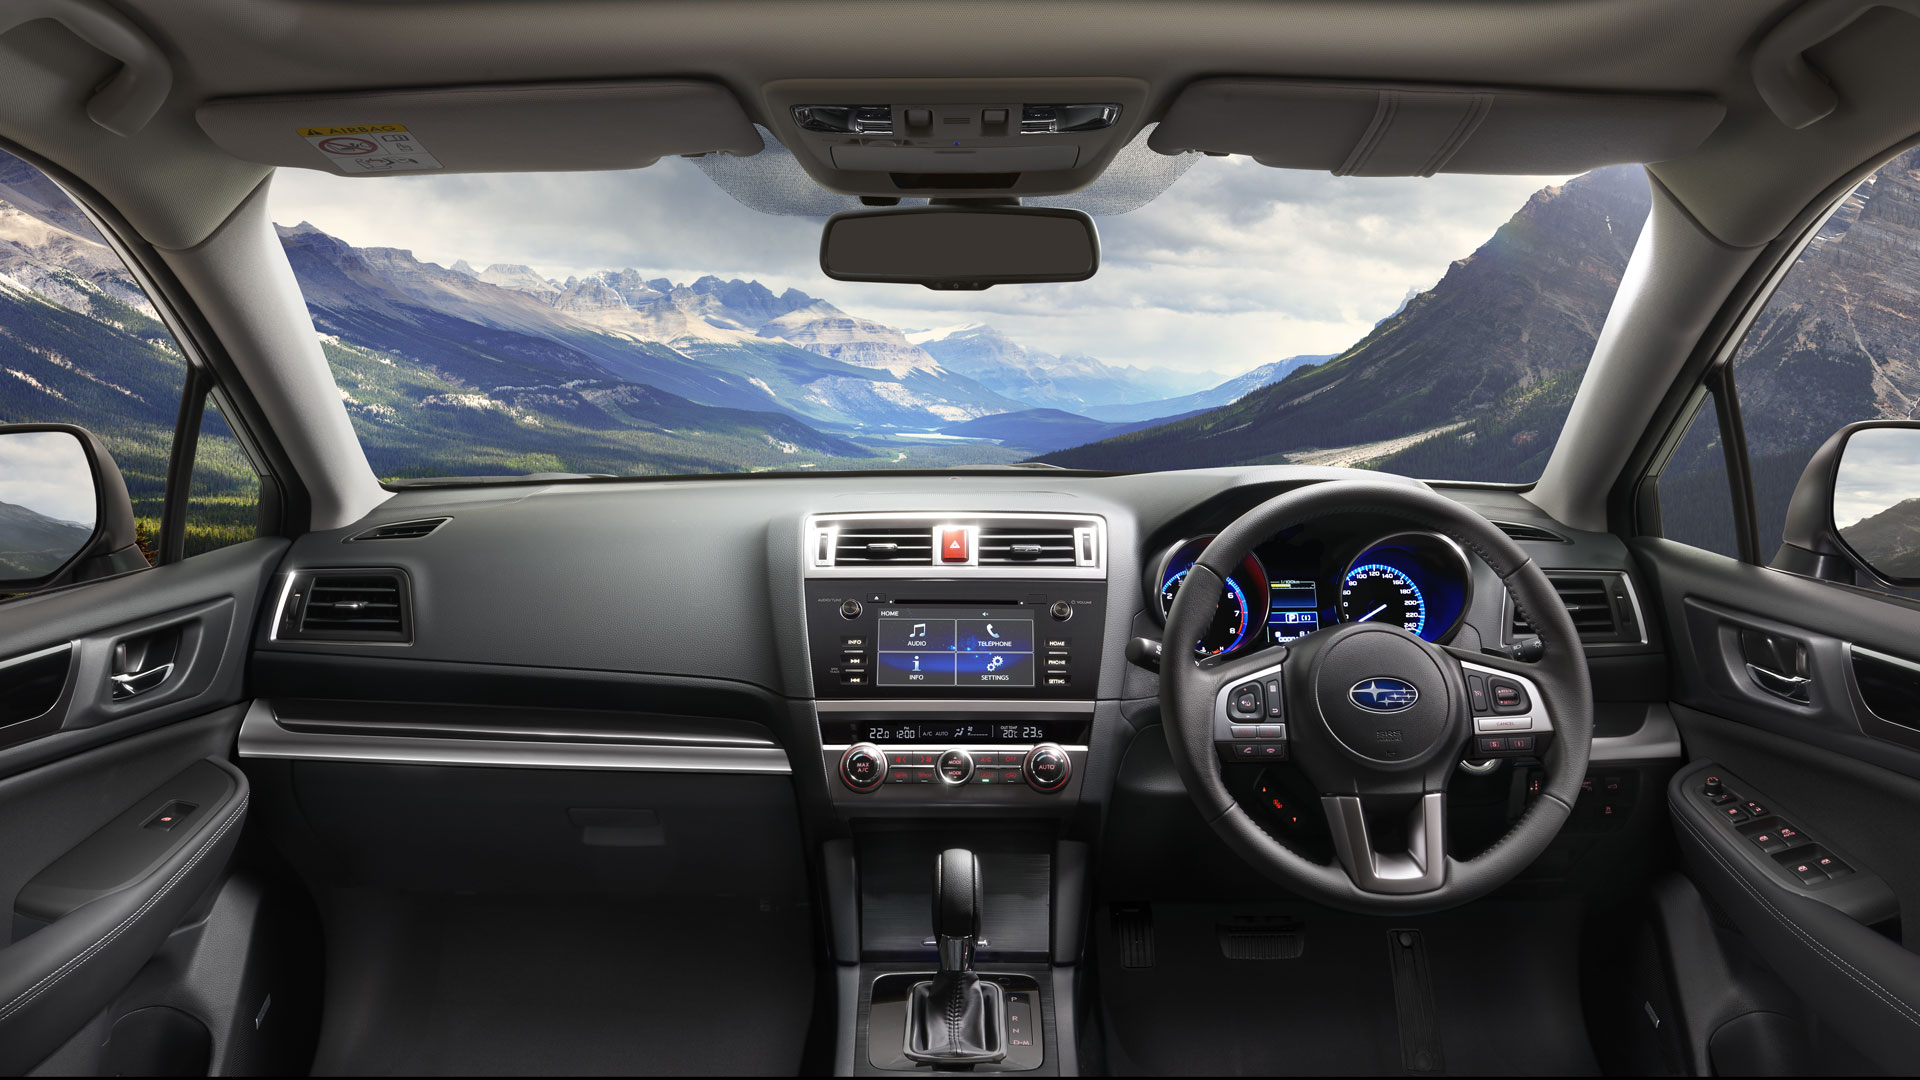 subaru outback 2016 interior. Black Bedroom Furniture Sets. Home Design Ideas